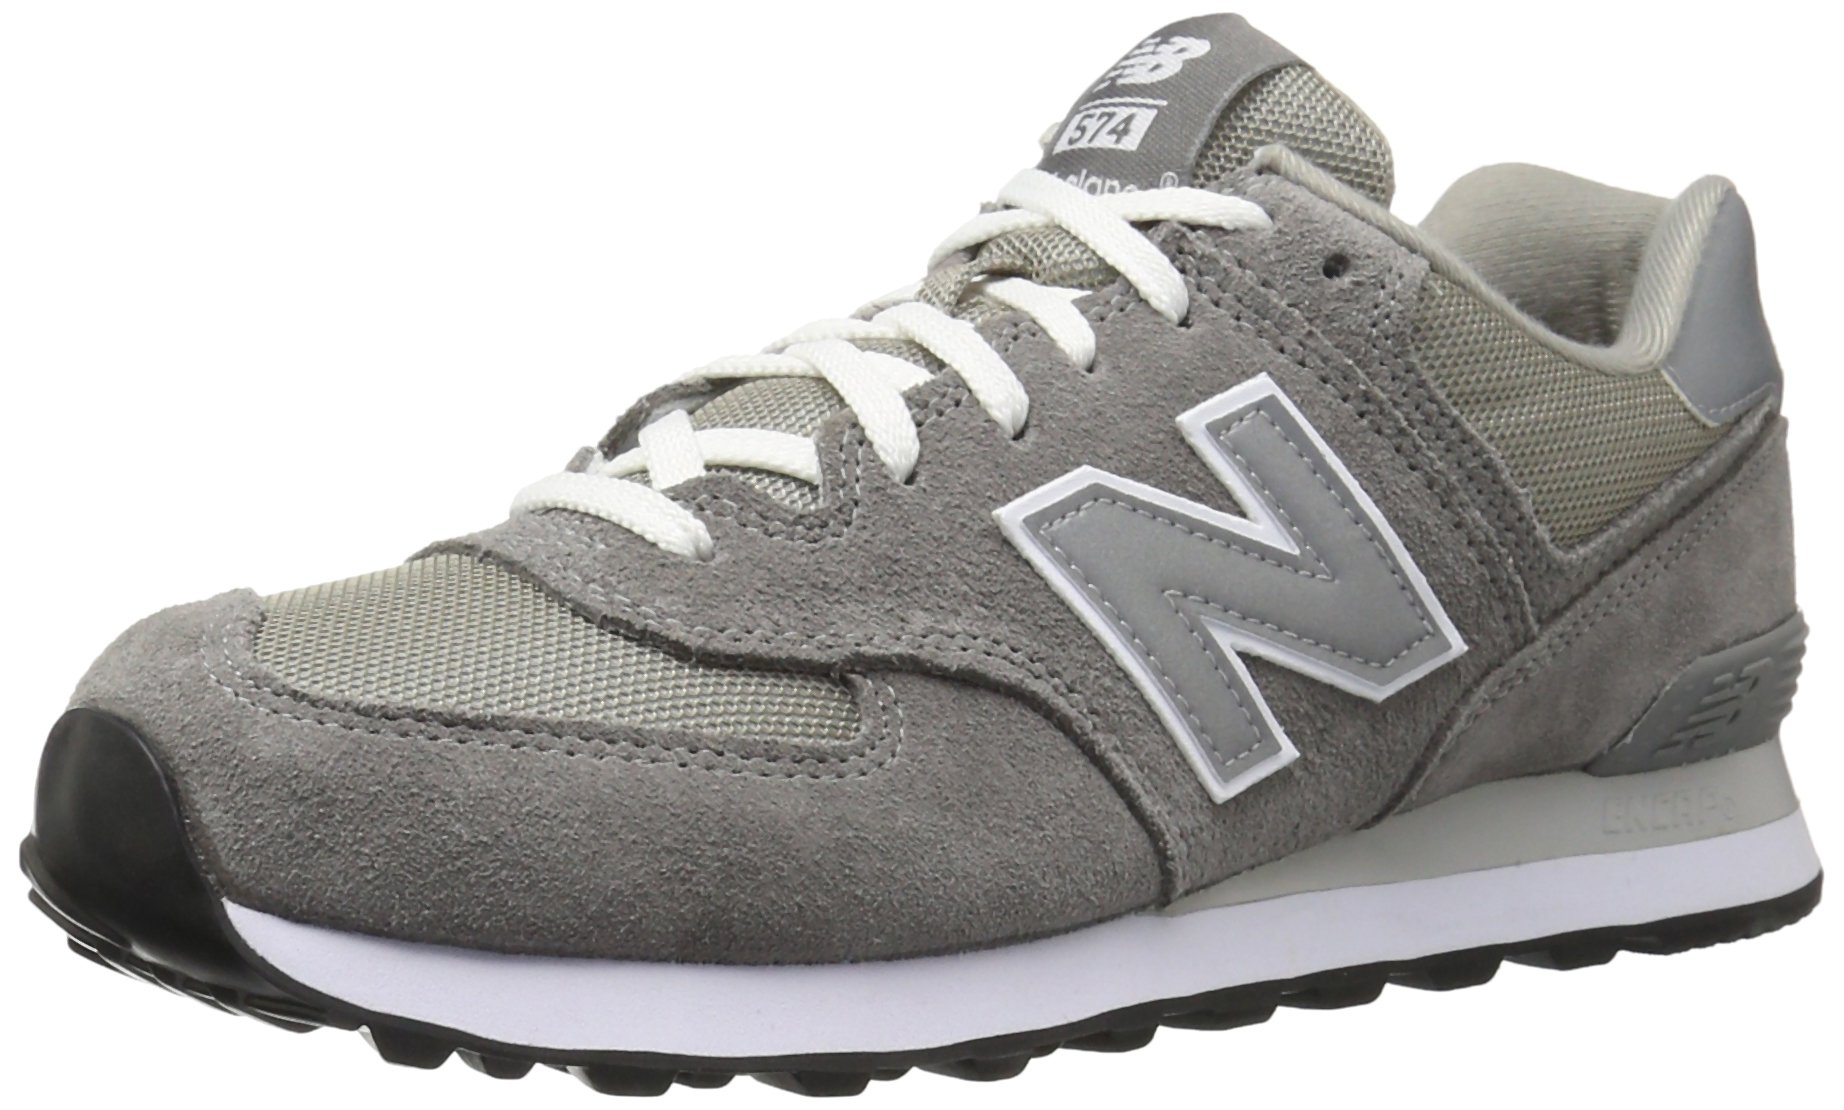 574 classic new balance Silver